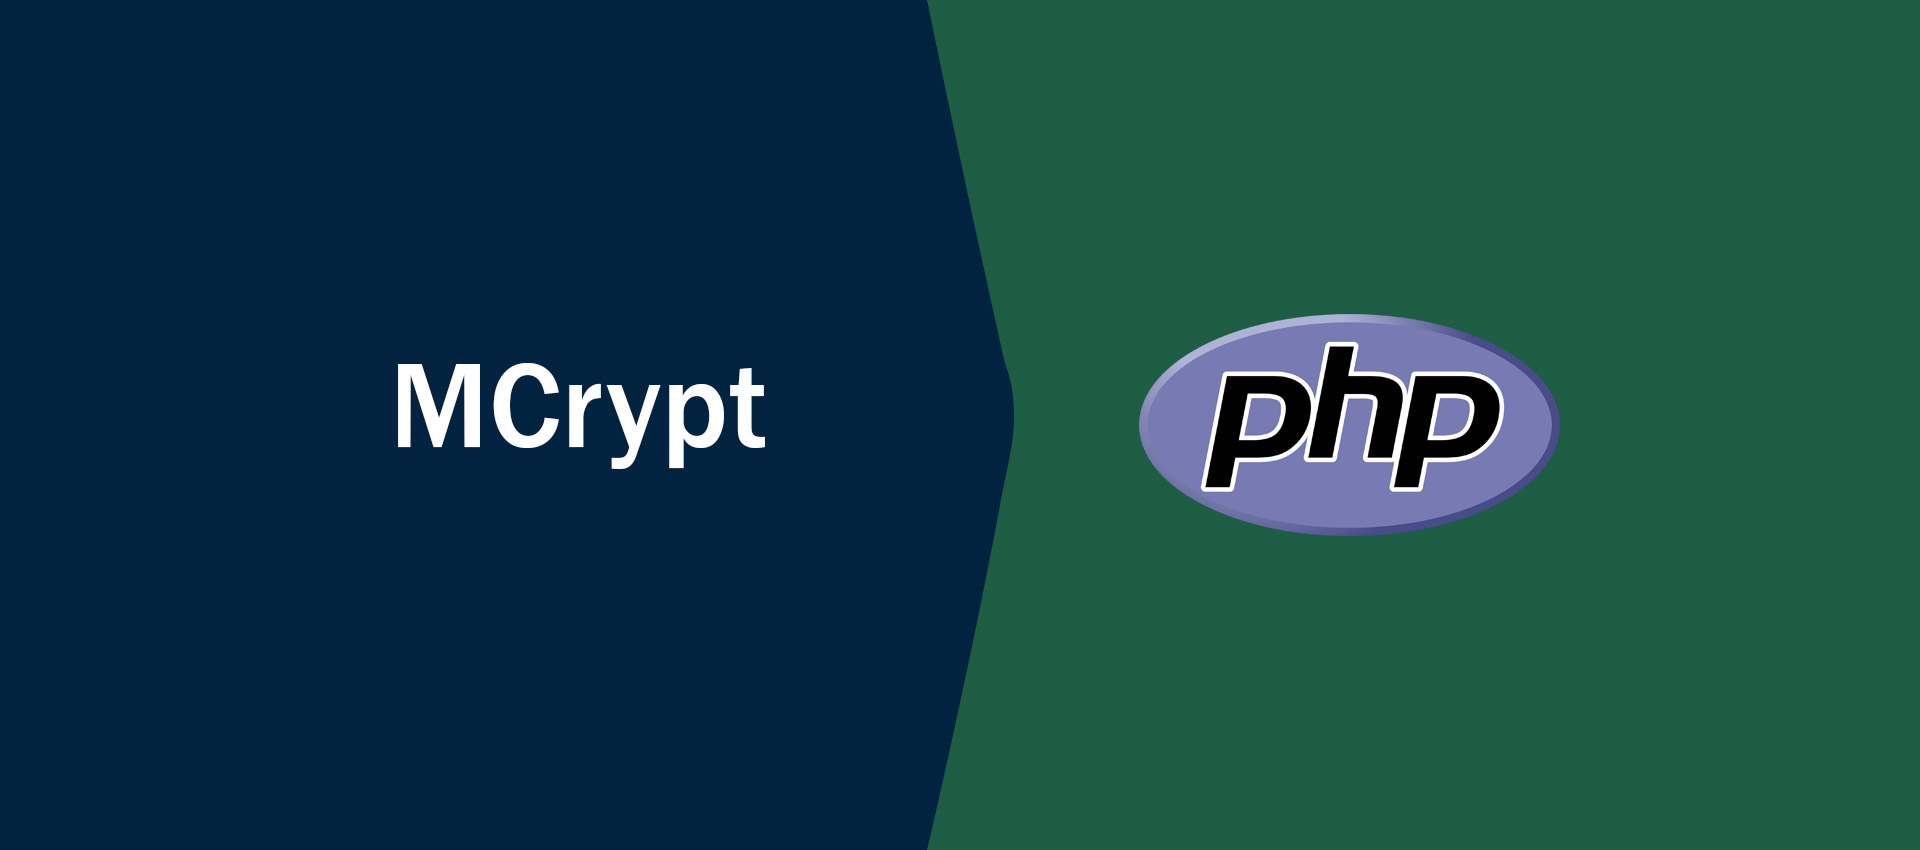 How To Install MCrypt For PHP 8 On Ubuntu 20.04 LTS